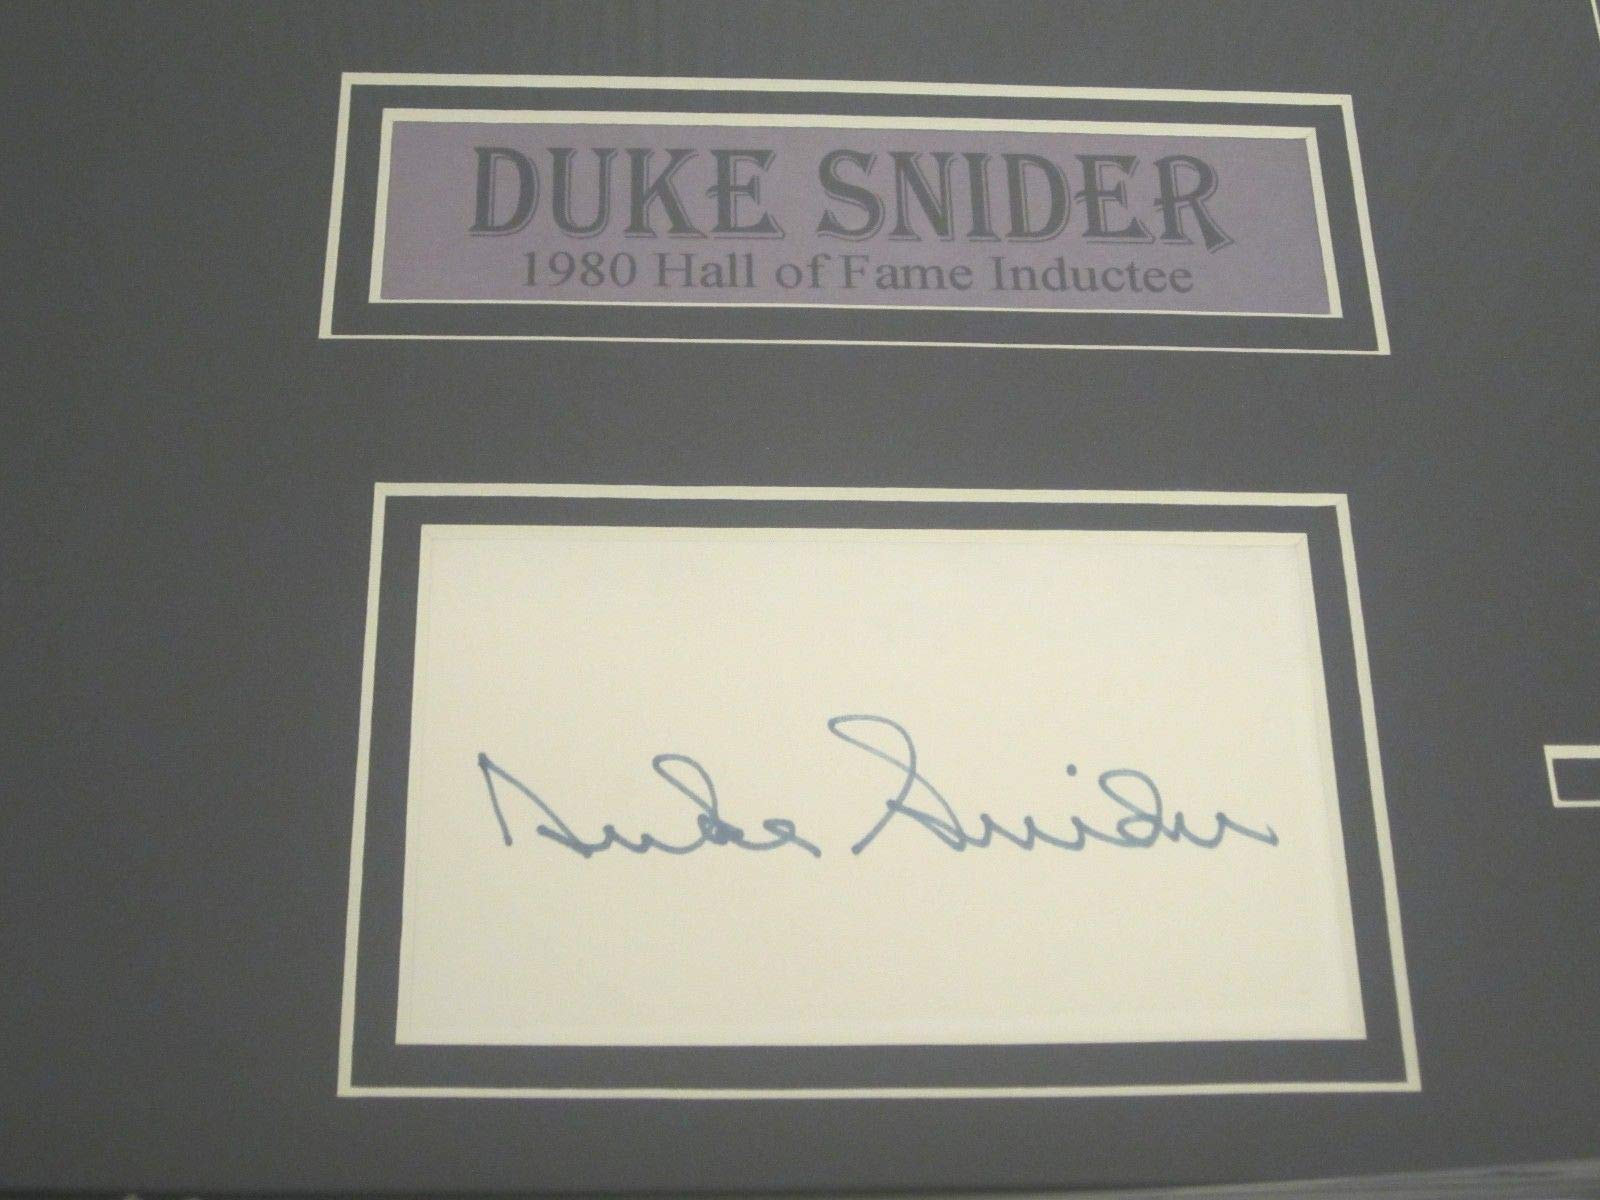 Mickey Mantle Willie Mays Duke Snider Autographed Signed Framed Matted Index Cards JSA Authentication